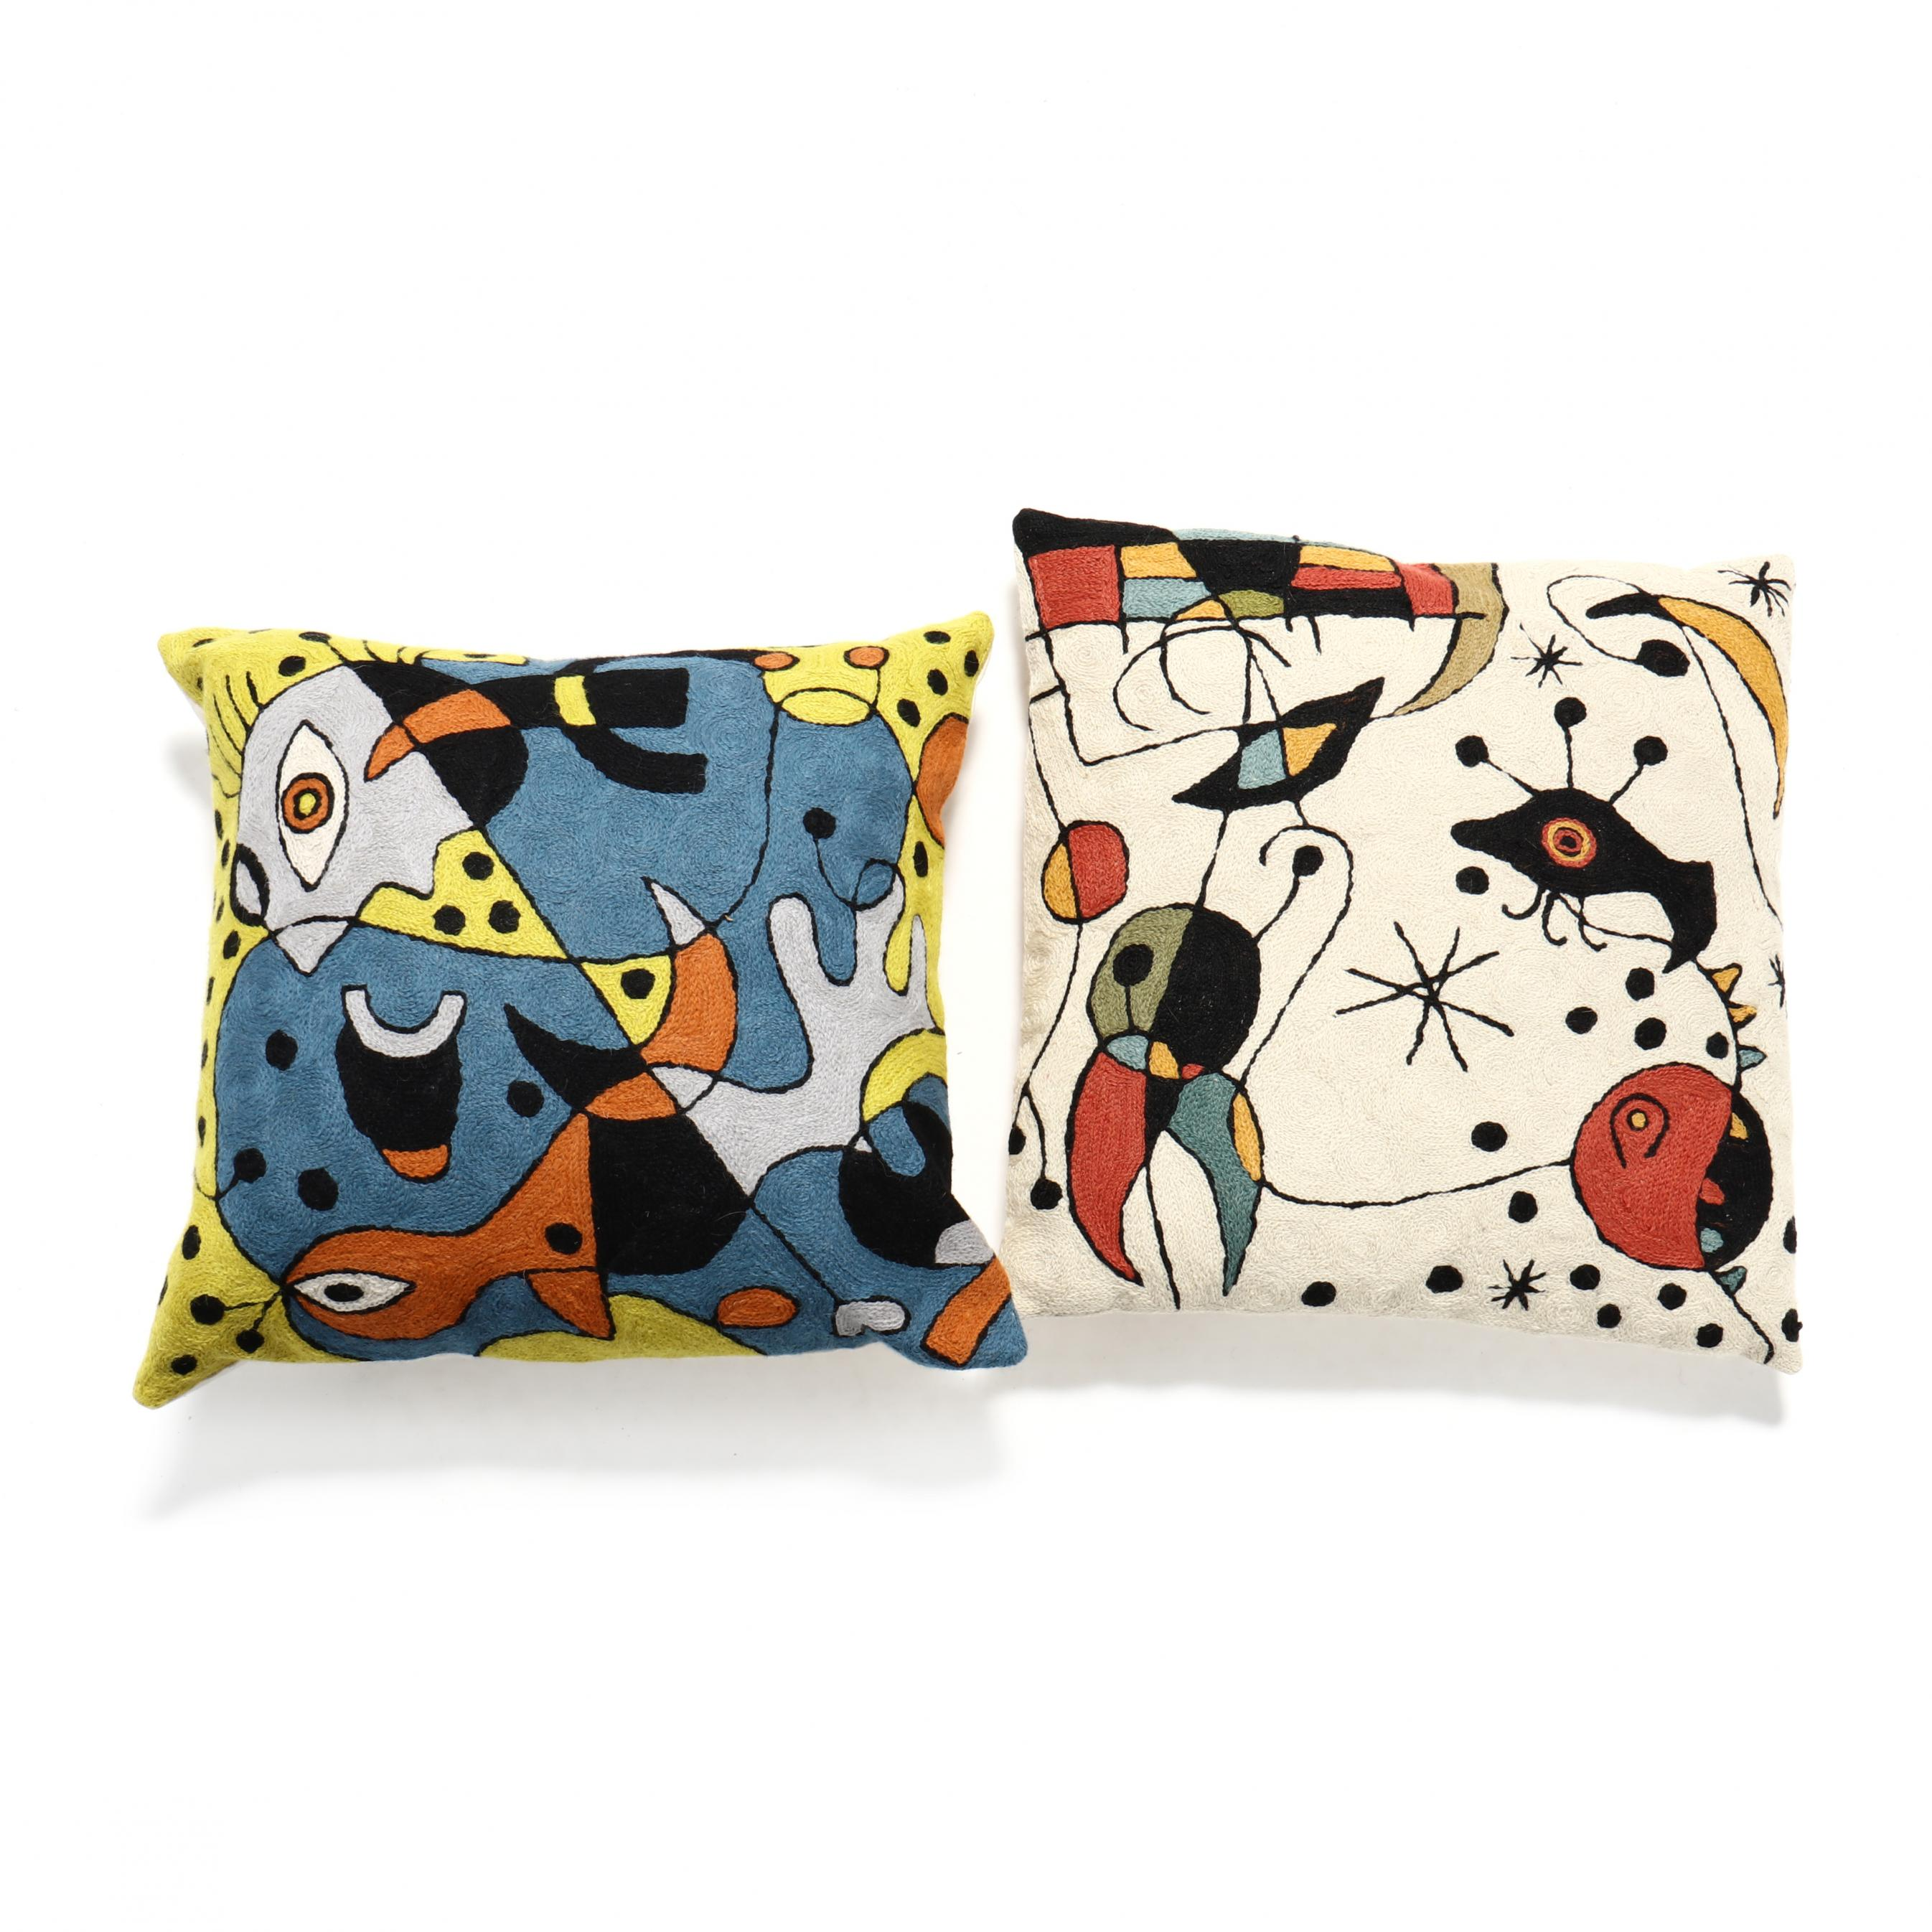 two-woven-pillows-after-joan-miro